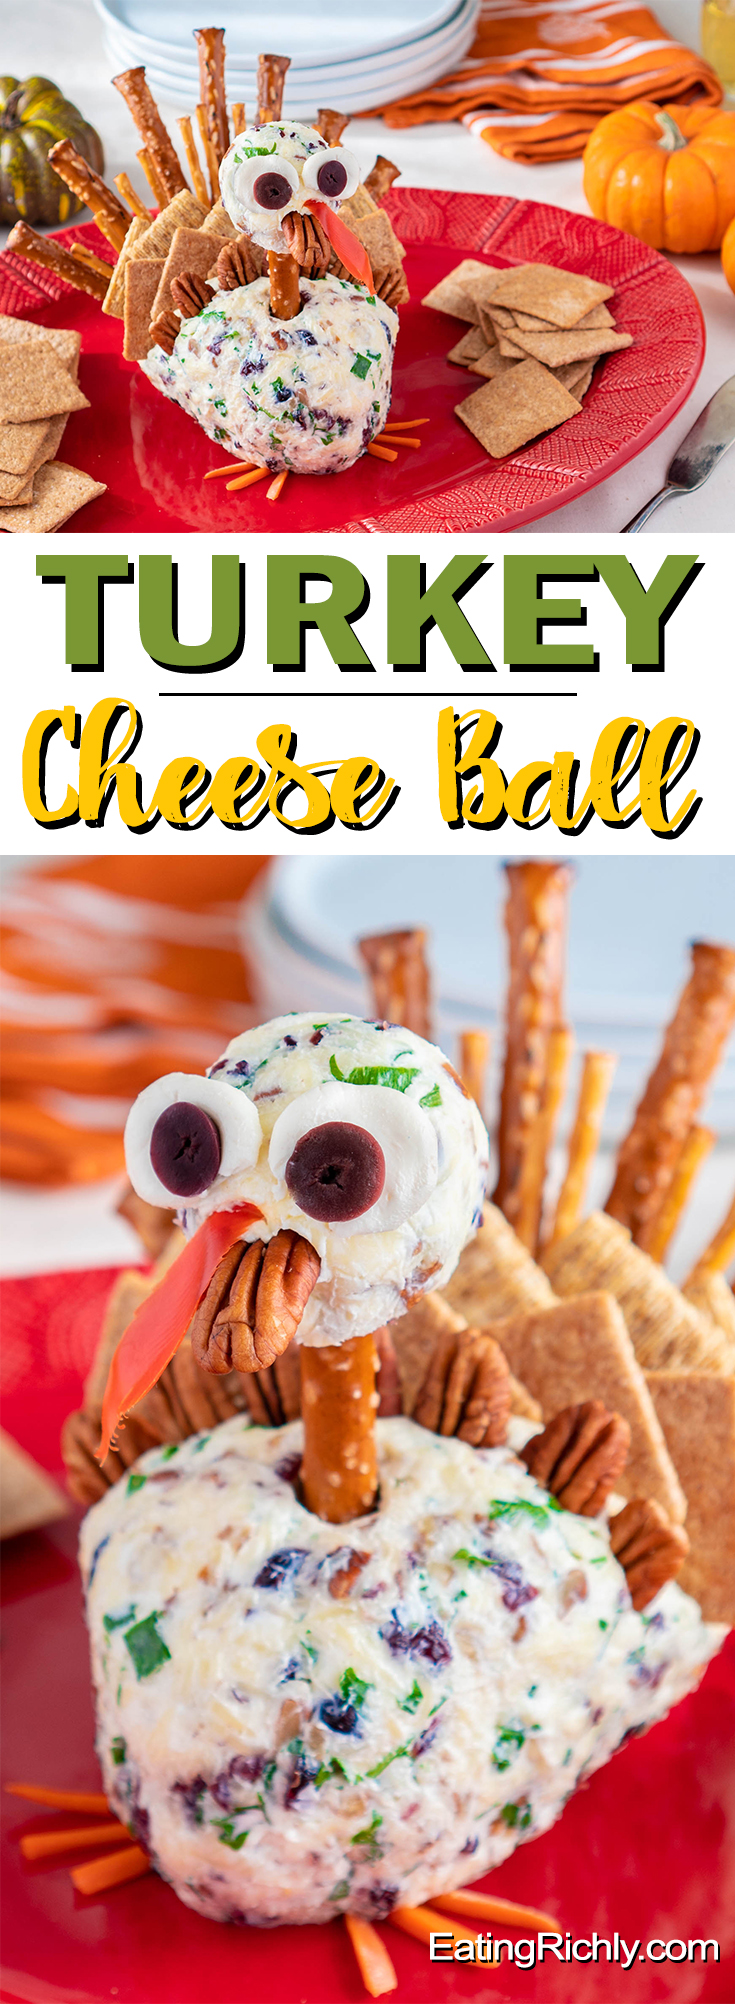 Turkey Cheese Ball Edible Centerpiece